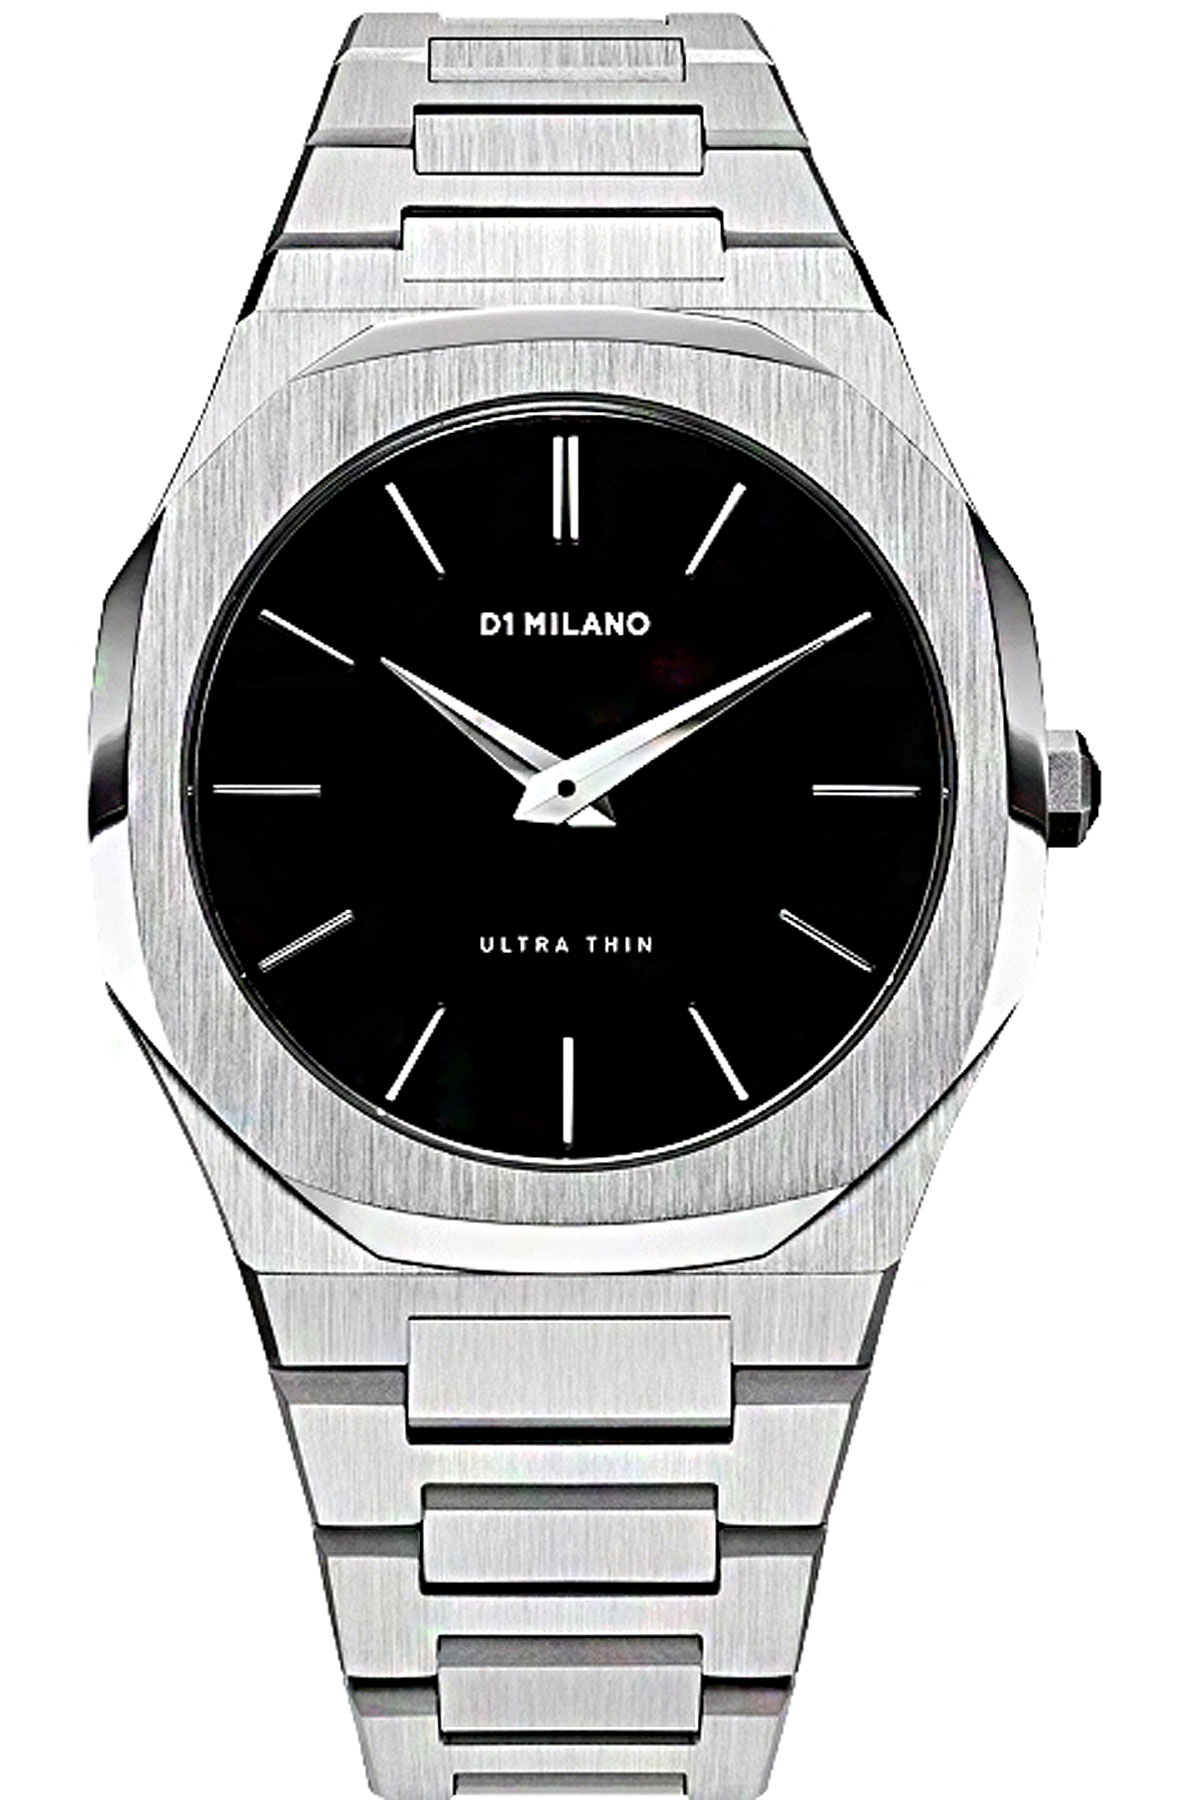 D1 Milano Watch for Men, Silver, Stainless Steel, 2019